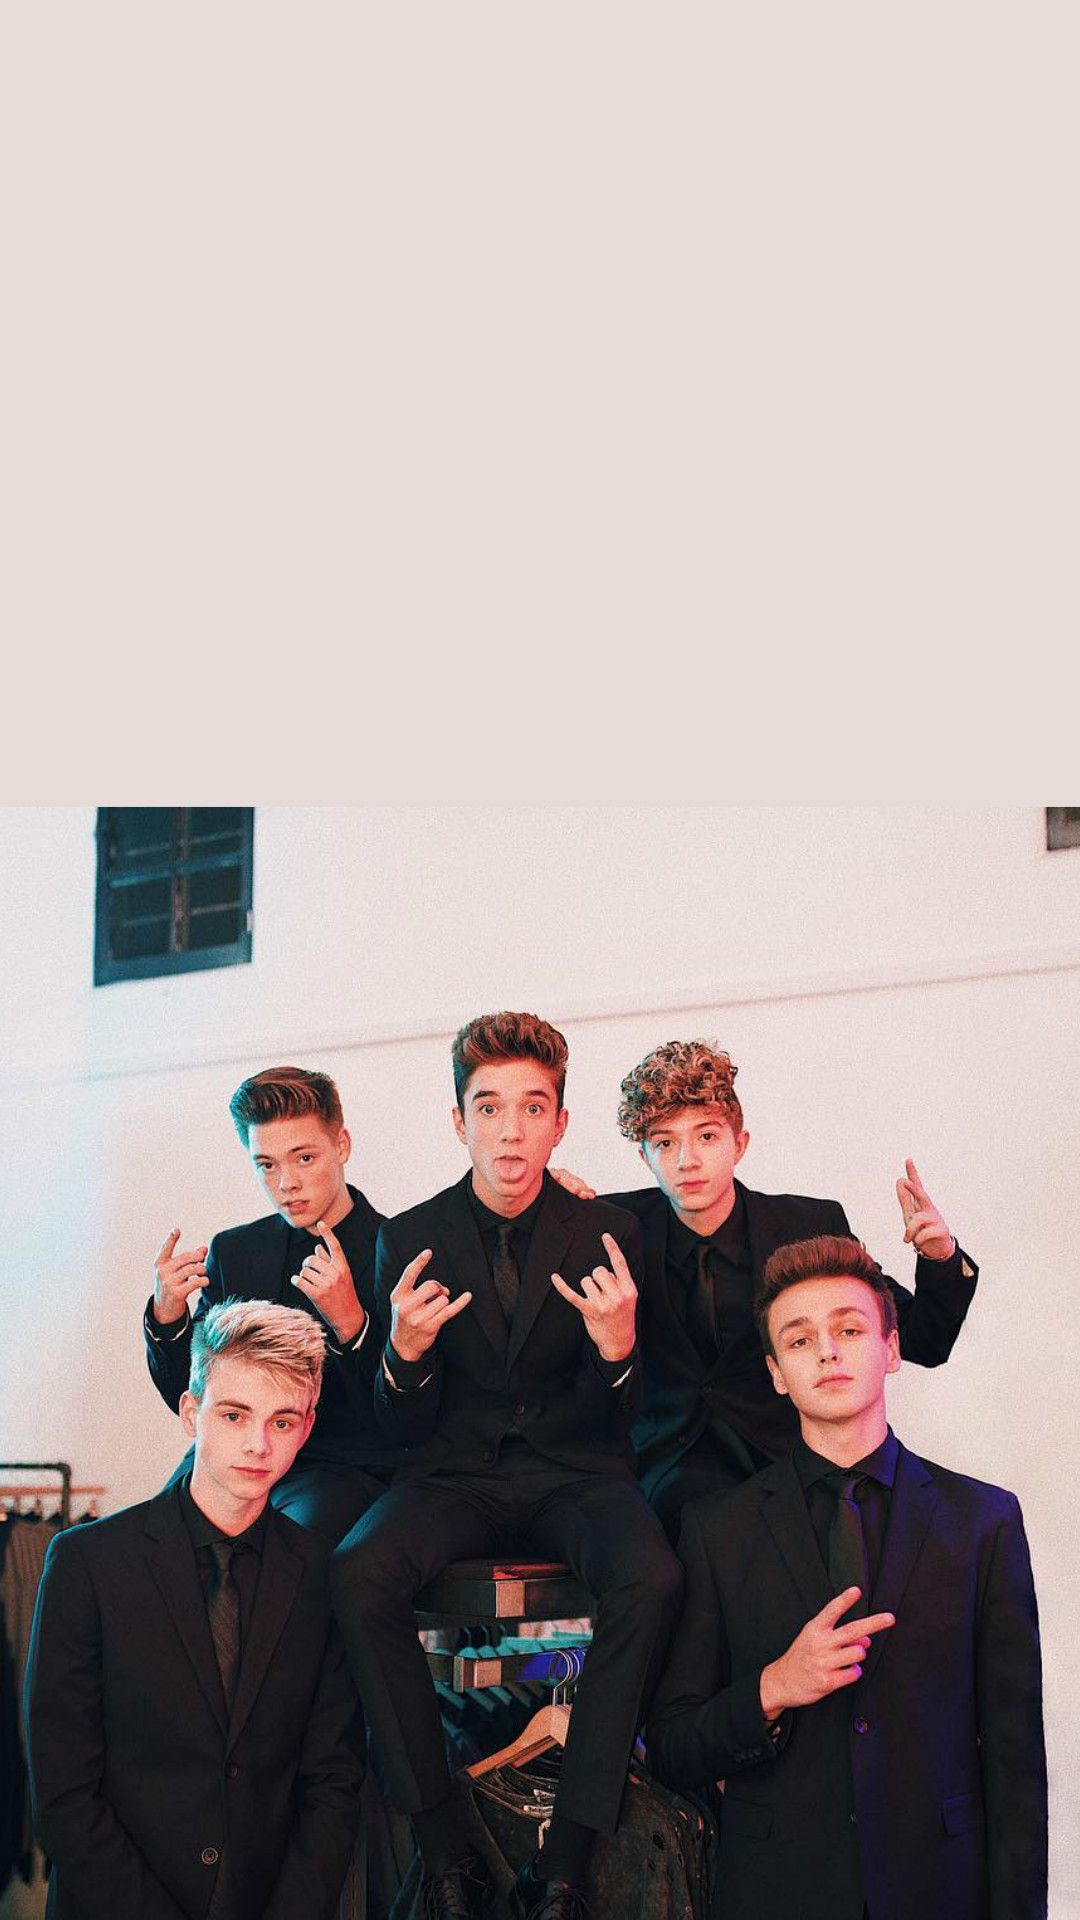 Wallpapers Locks Why Don T We Wallpapers Lockscreens Recent Why Dont We Boys Band Wallpapers Wdw